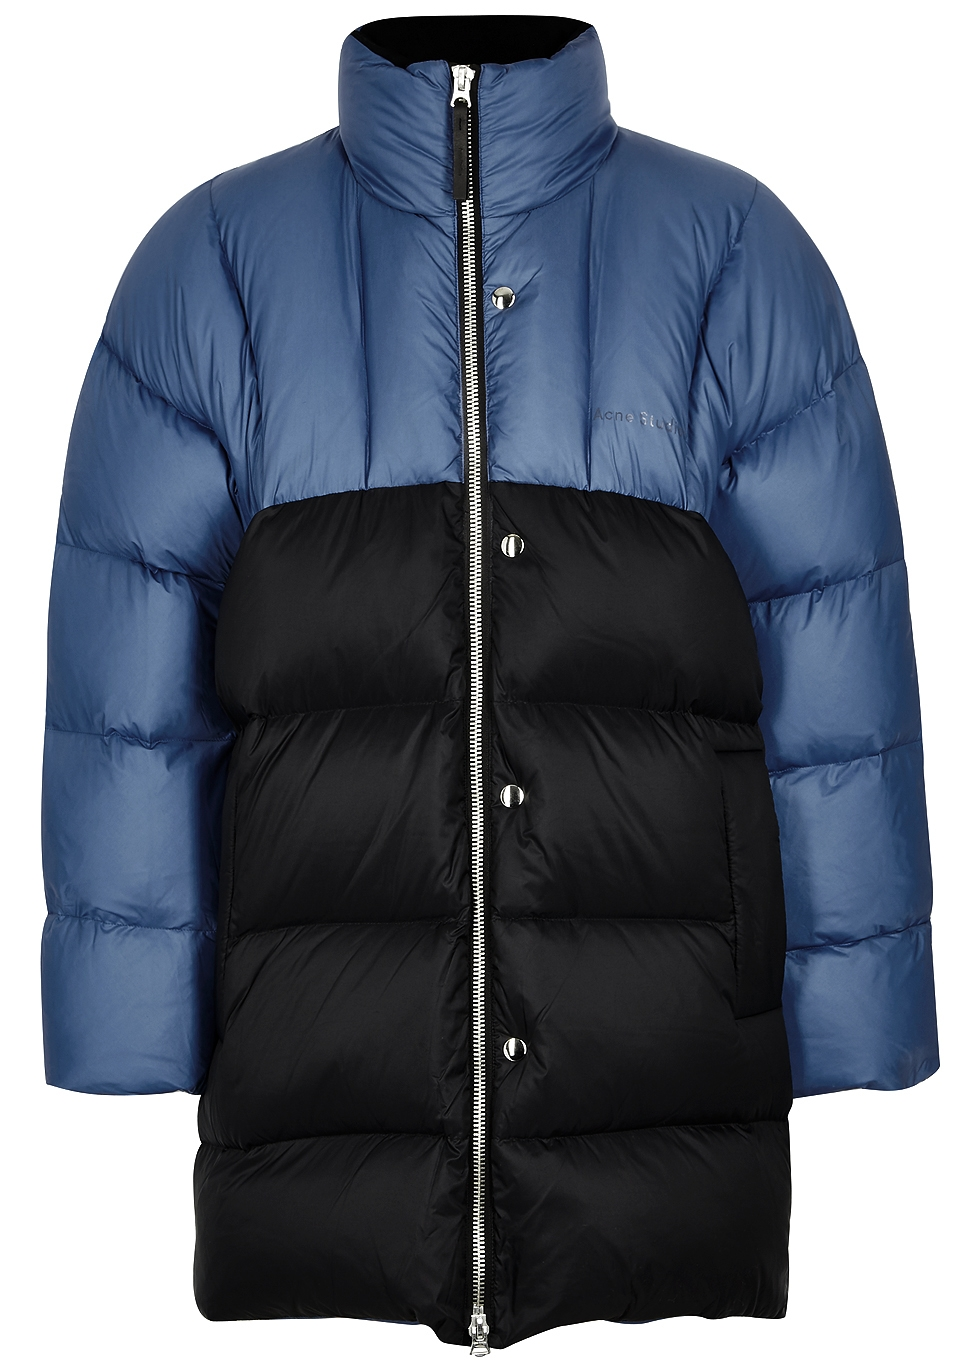 Acne Studios Two Tone In Blue Jacket Oversized Quilted Nylon Down rfagdrqxw